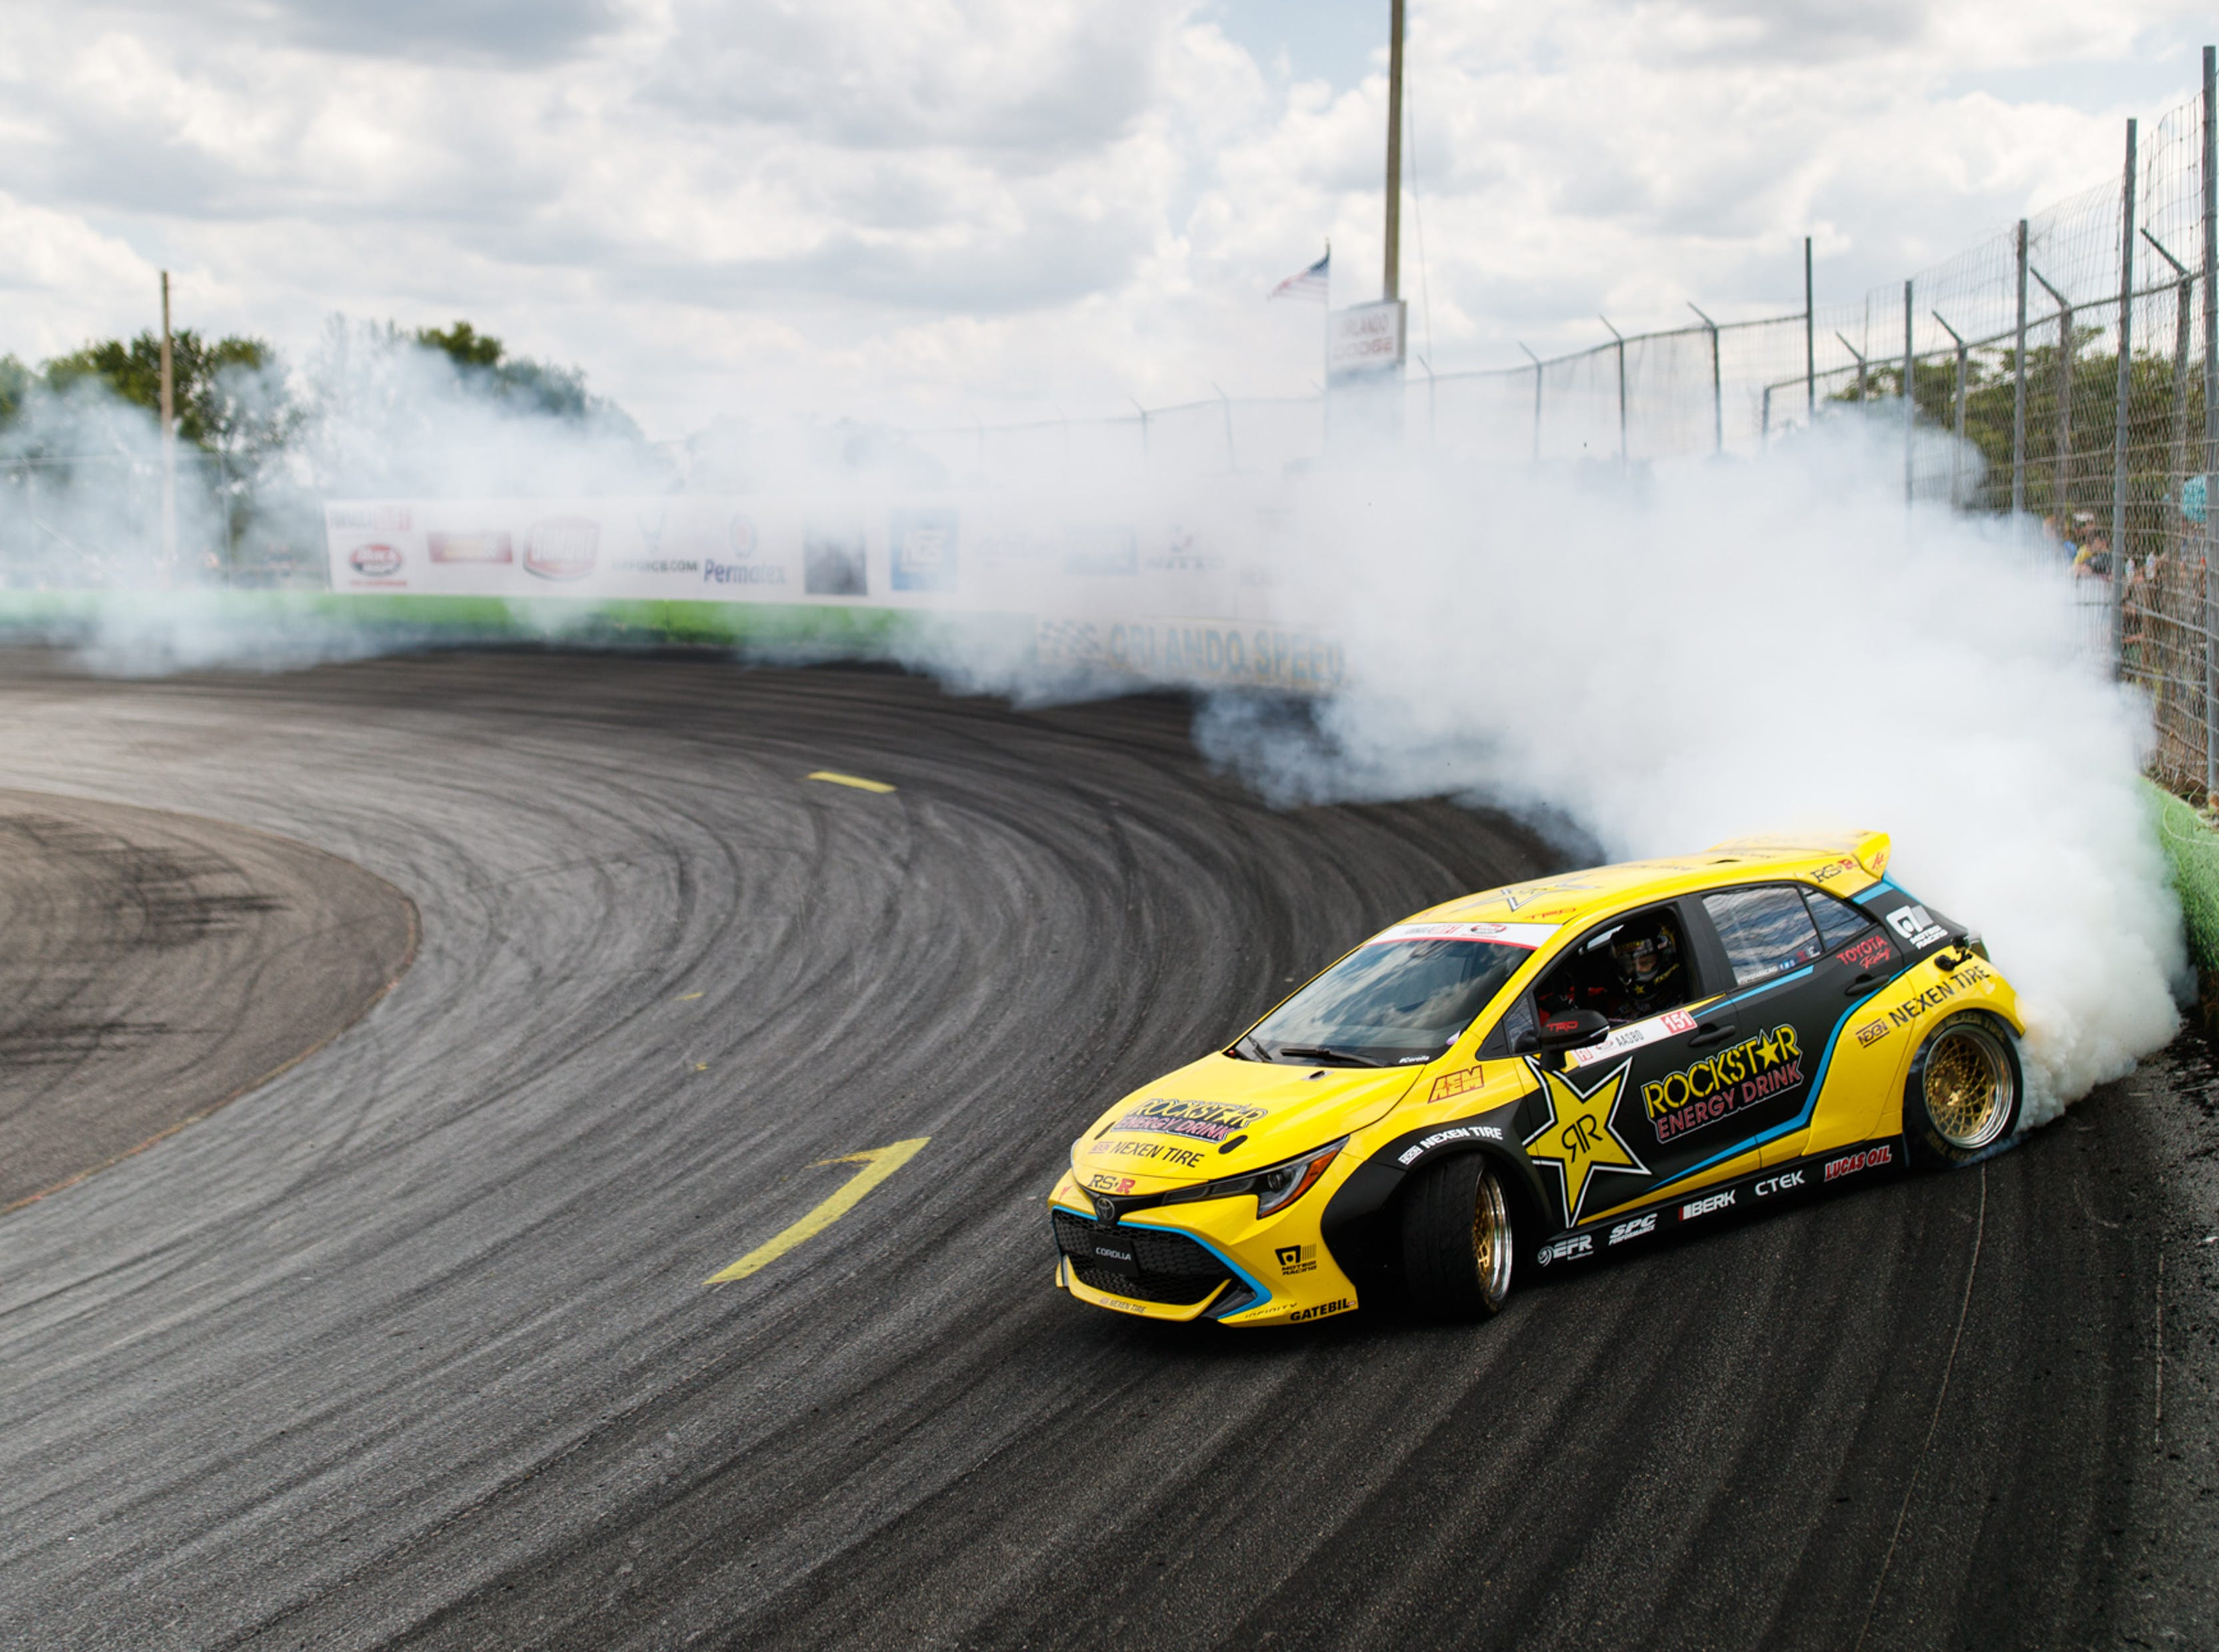 A Toyota Corolla hatchback becomes the Rockstar drift car at the SEMA aftermarket parts trade show in Las Vegas